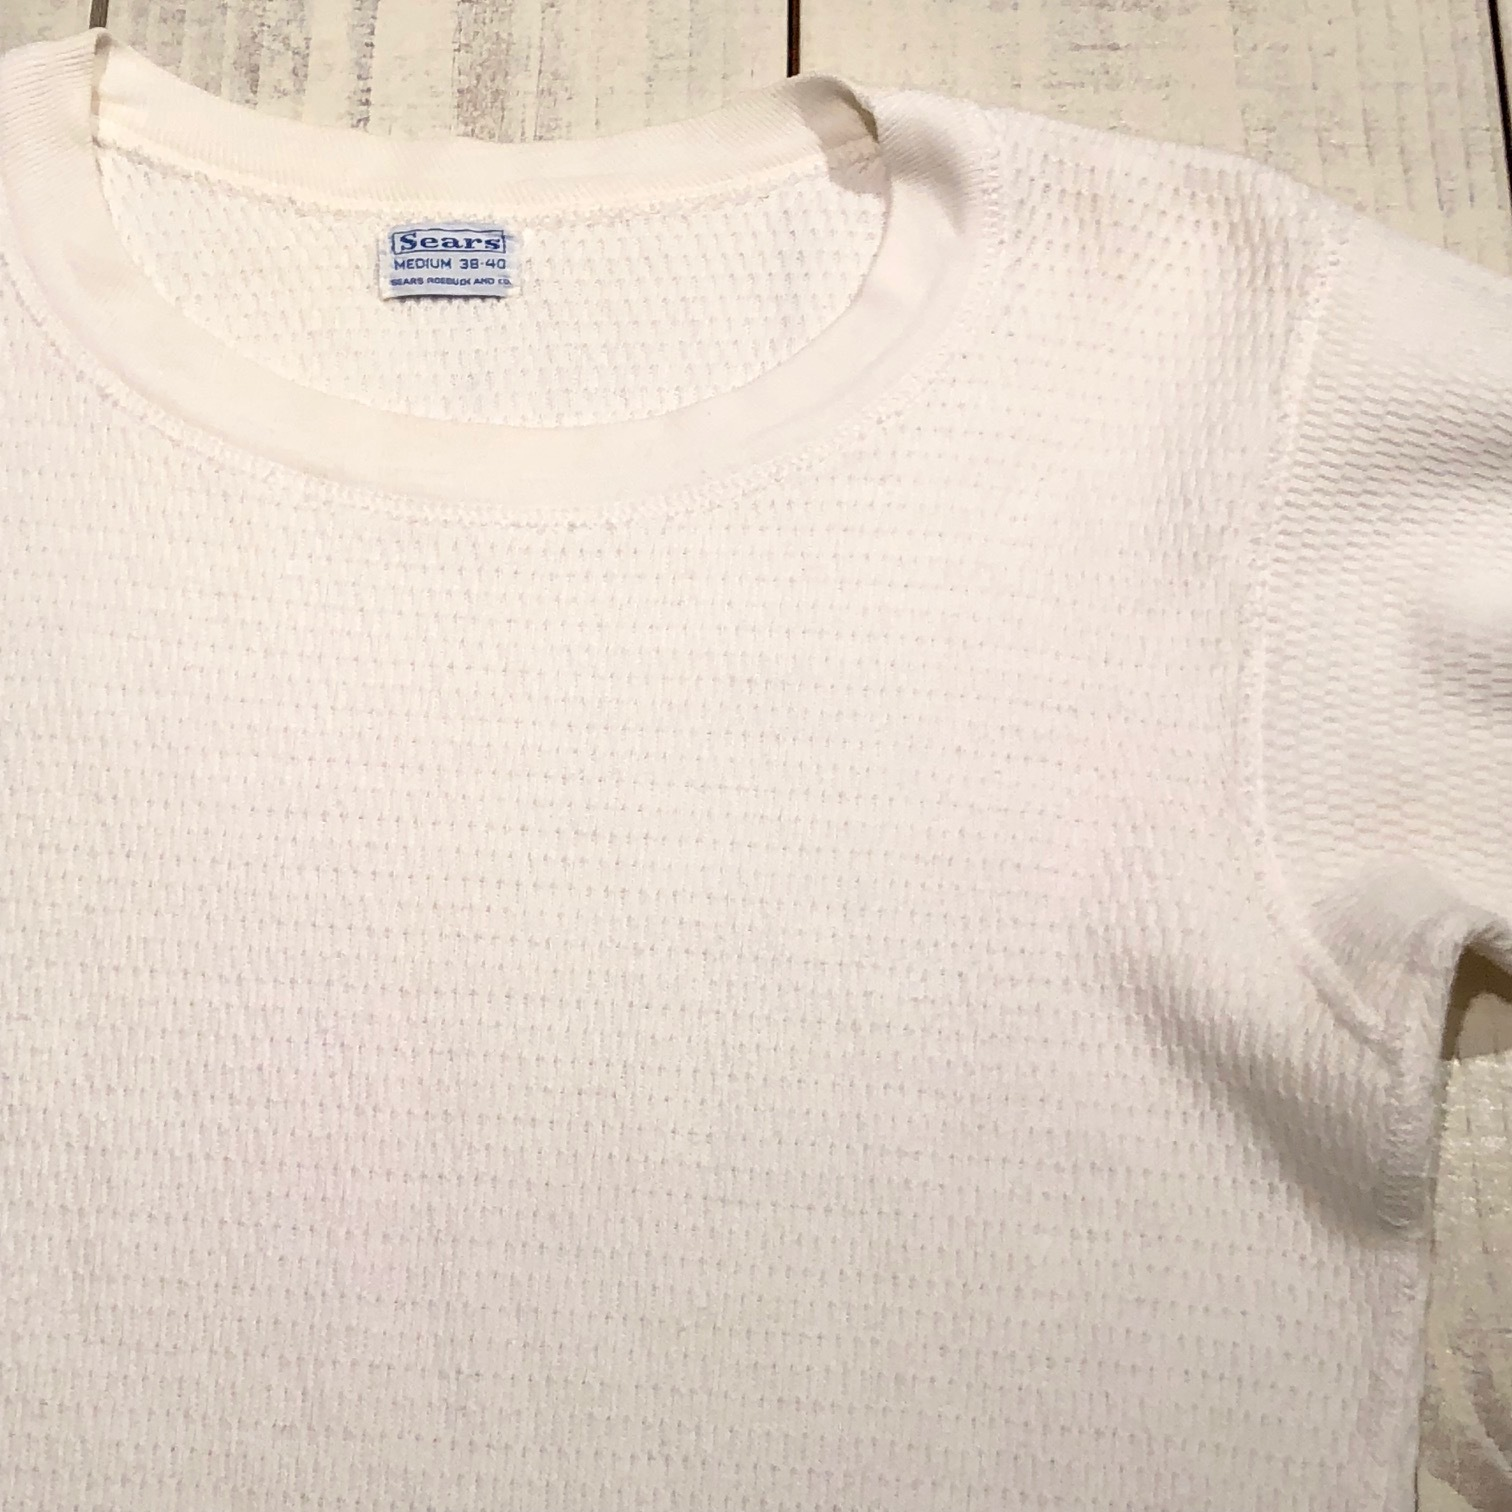 "1950s "" SEARS ROEBUCK AND CO. \"" ALL cotton HONEY-WAFFLE L/S THERMAL WEAR ※1月休業日のお知らせ ._d0172088_18594674.jpg"